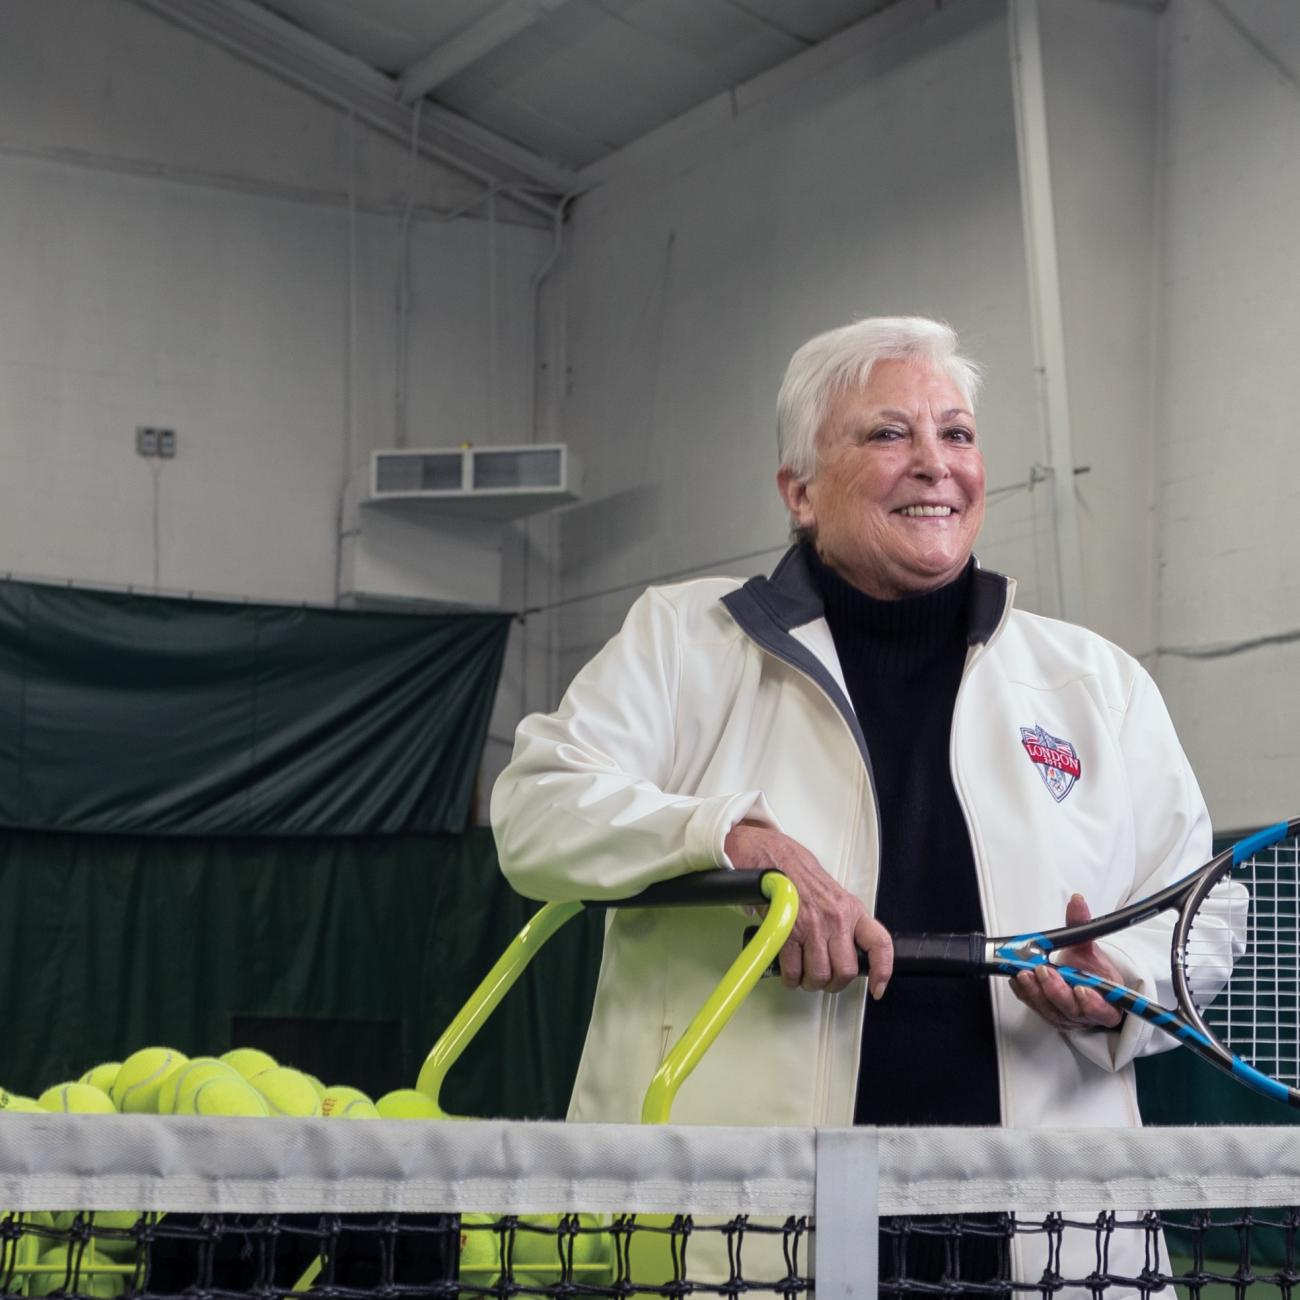 Donna Bernstein is passionate about tennis and philanthropy.